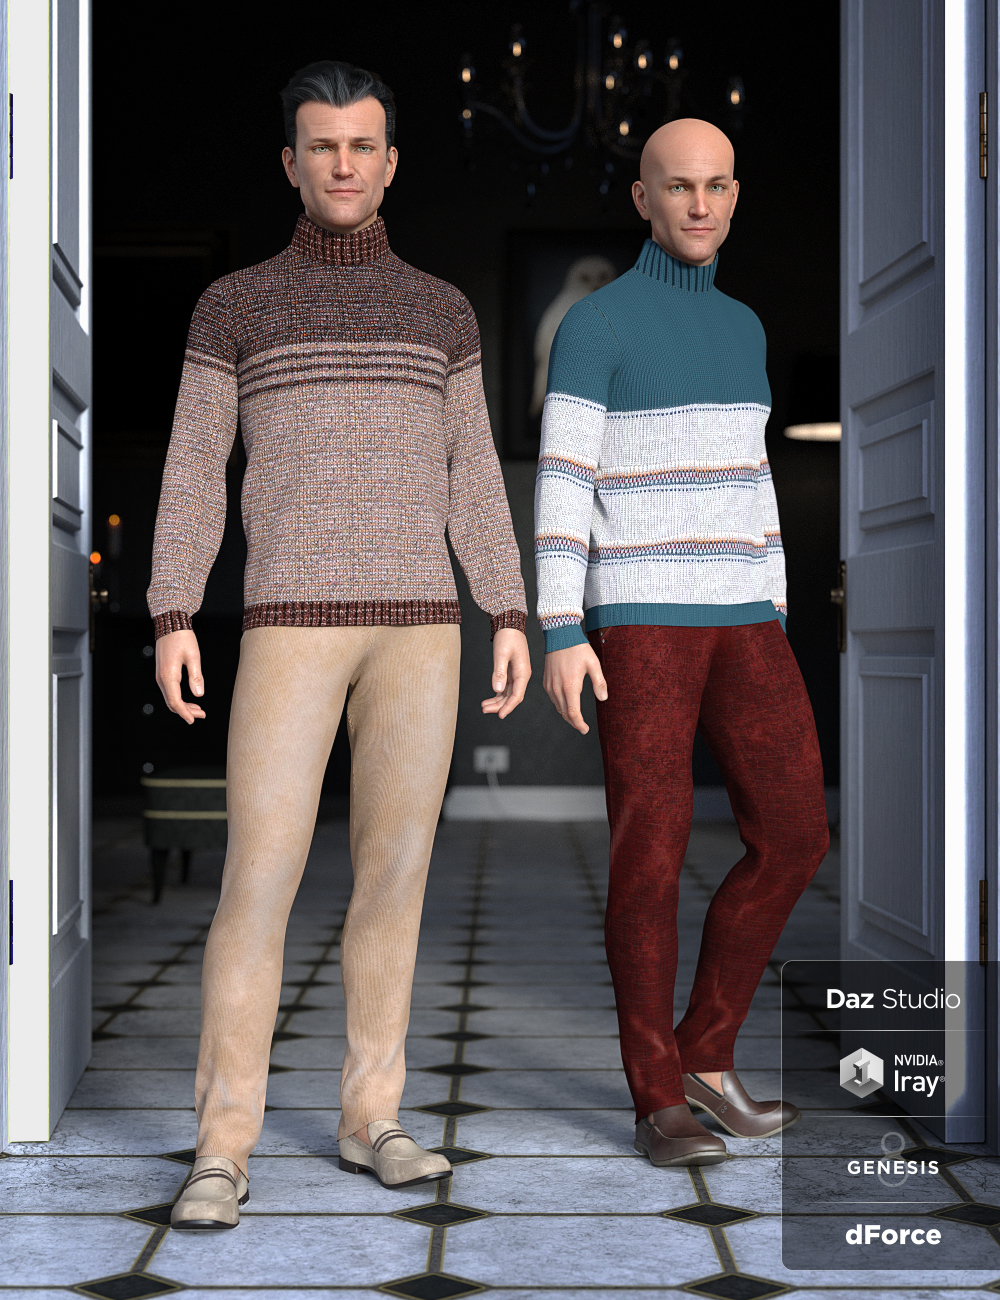 dForce Sweater Outfit Textures by: Moonscape GraphicsSade, 3D Models by Daz 3D